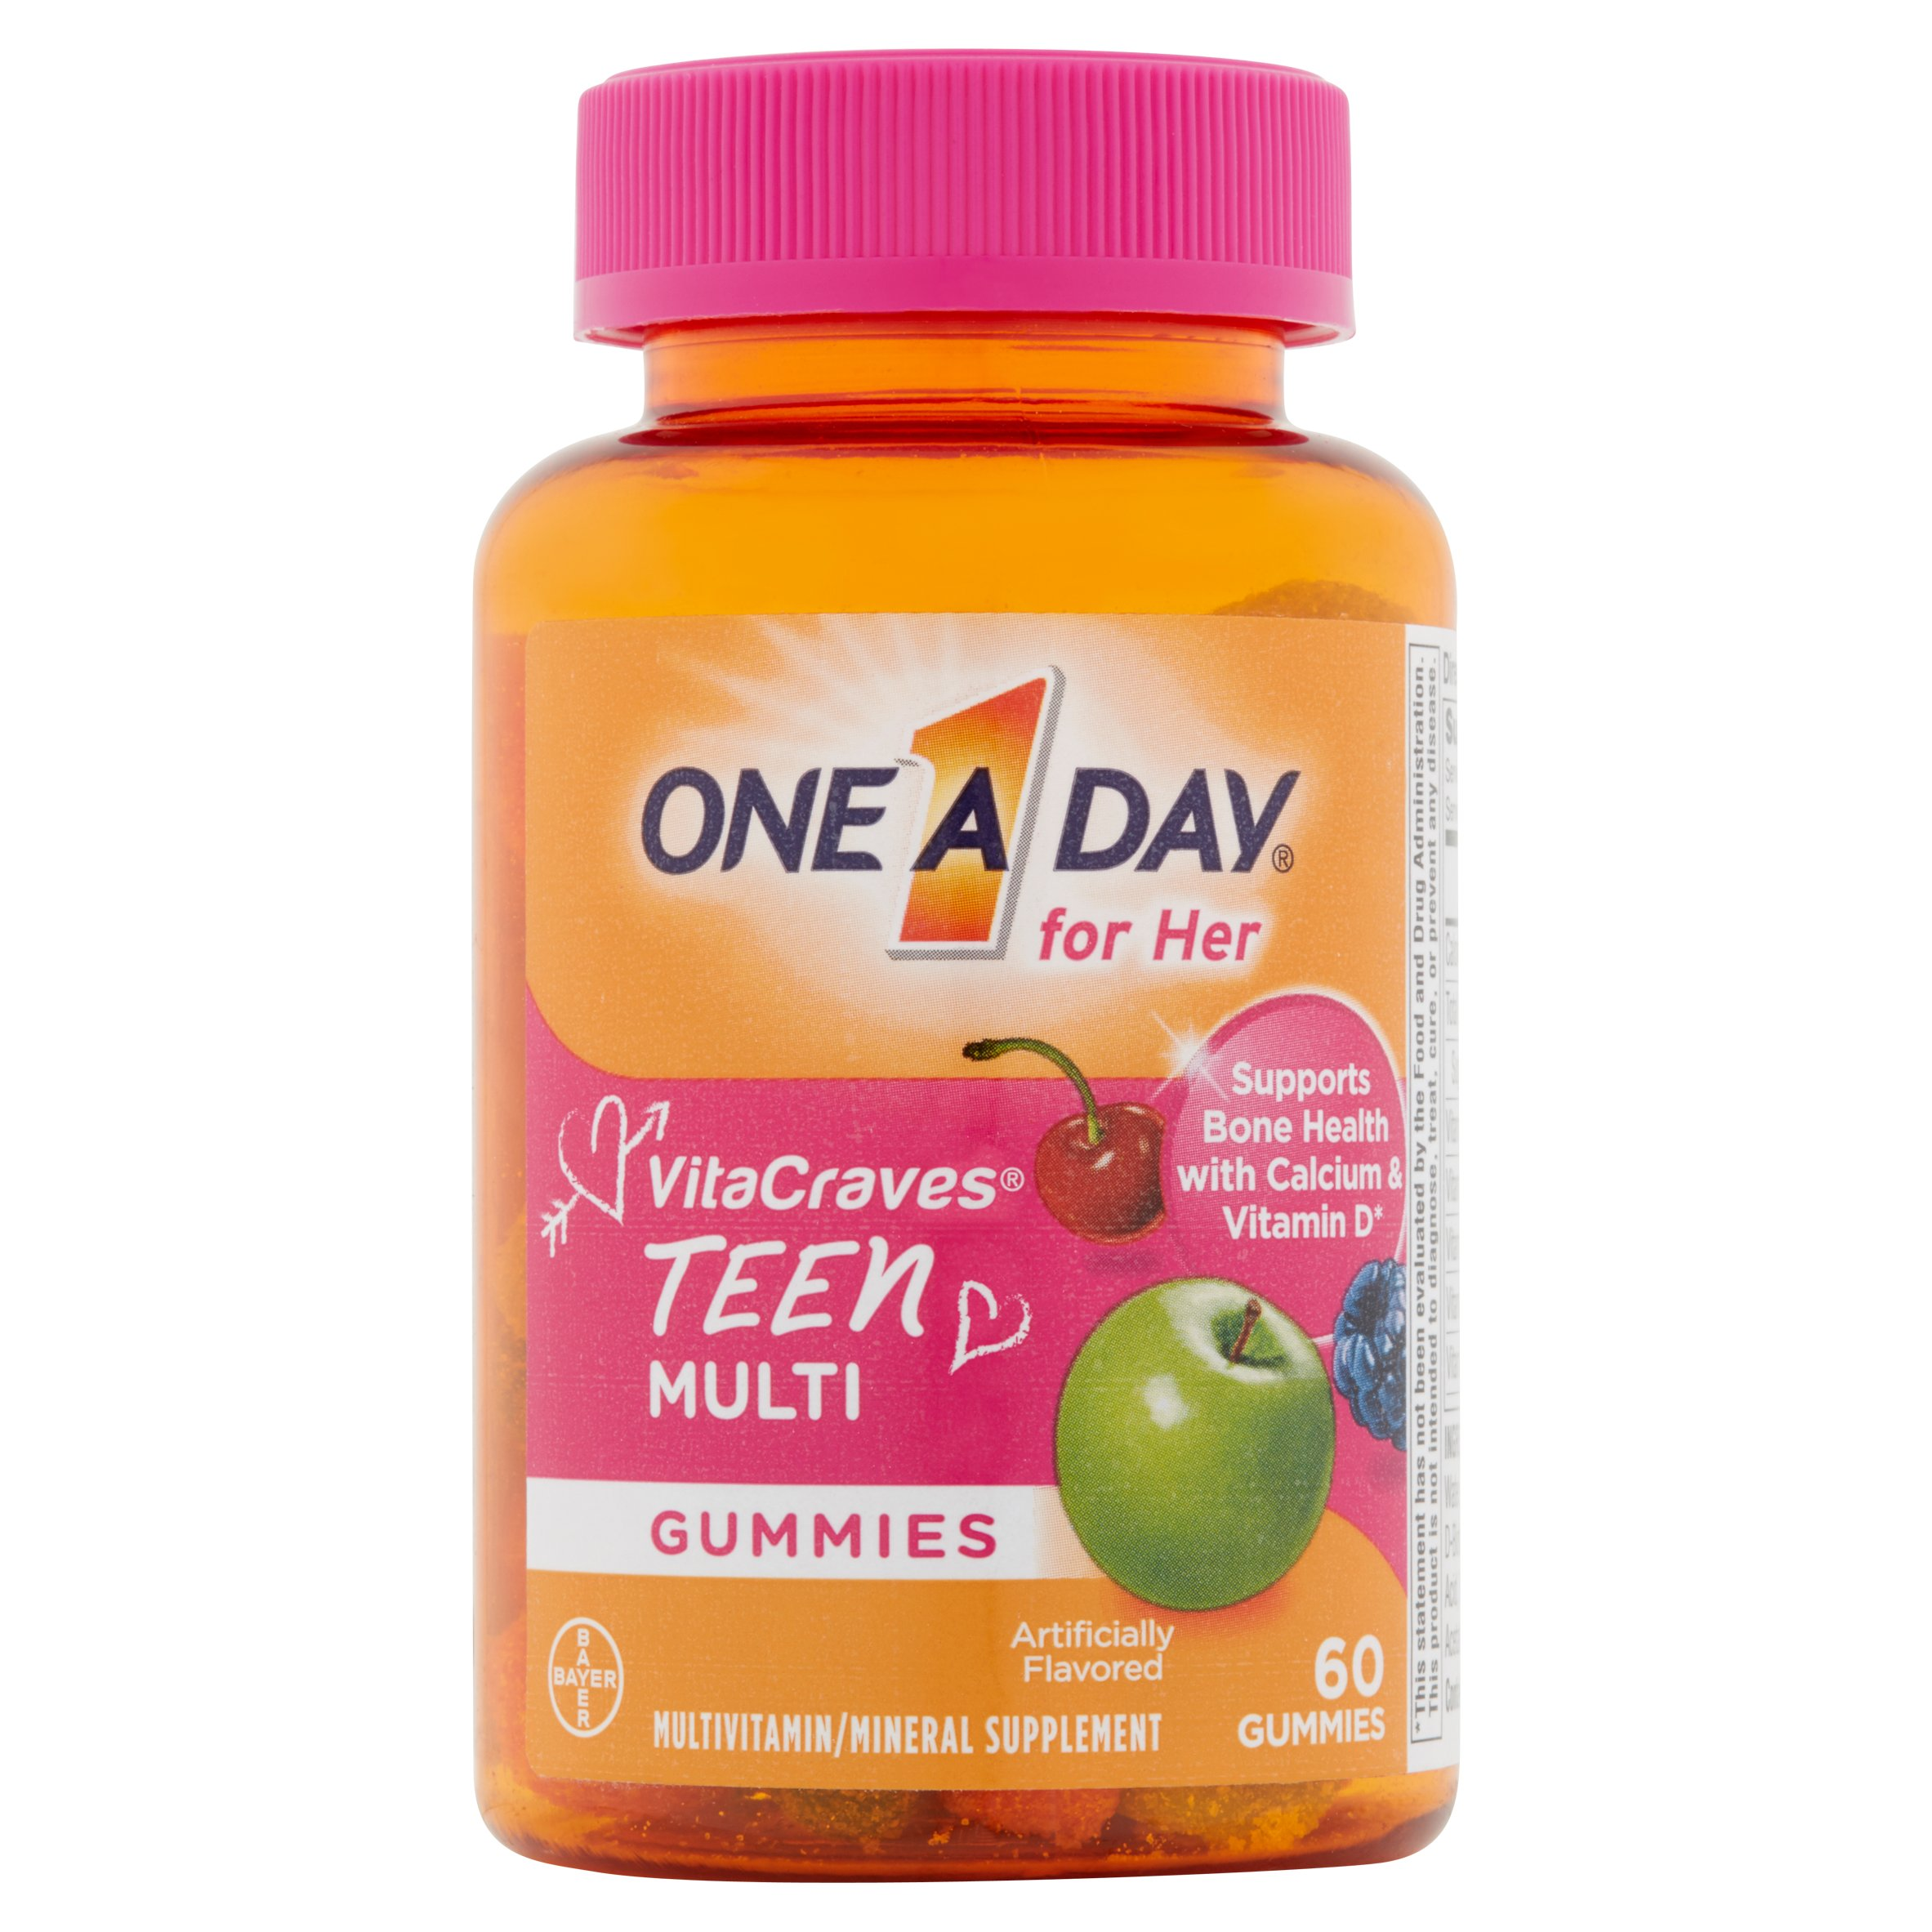 One a day teenage vitamins for her